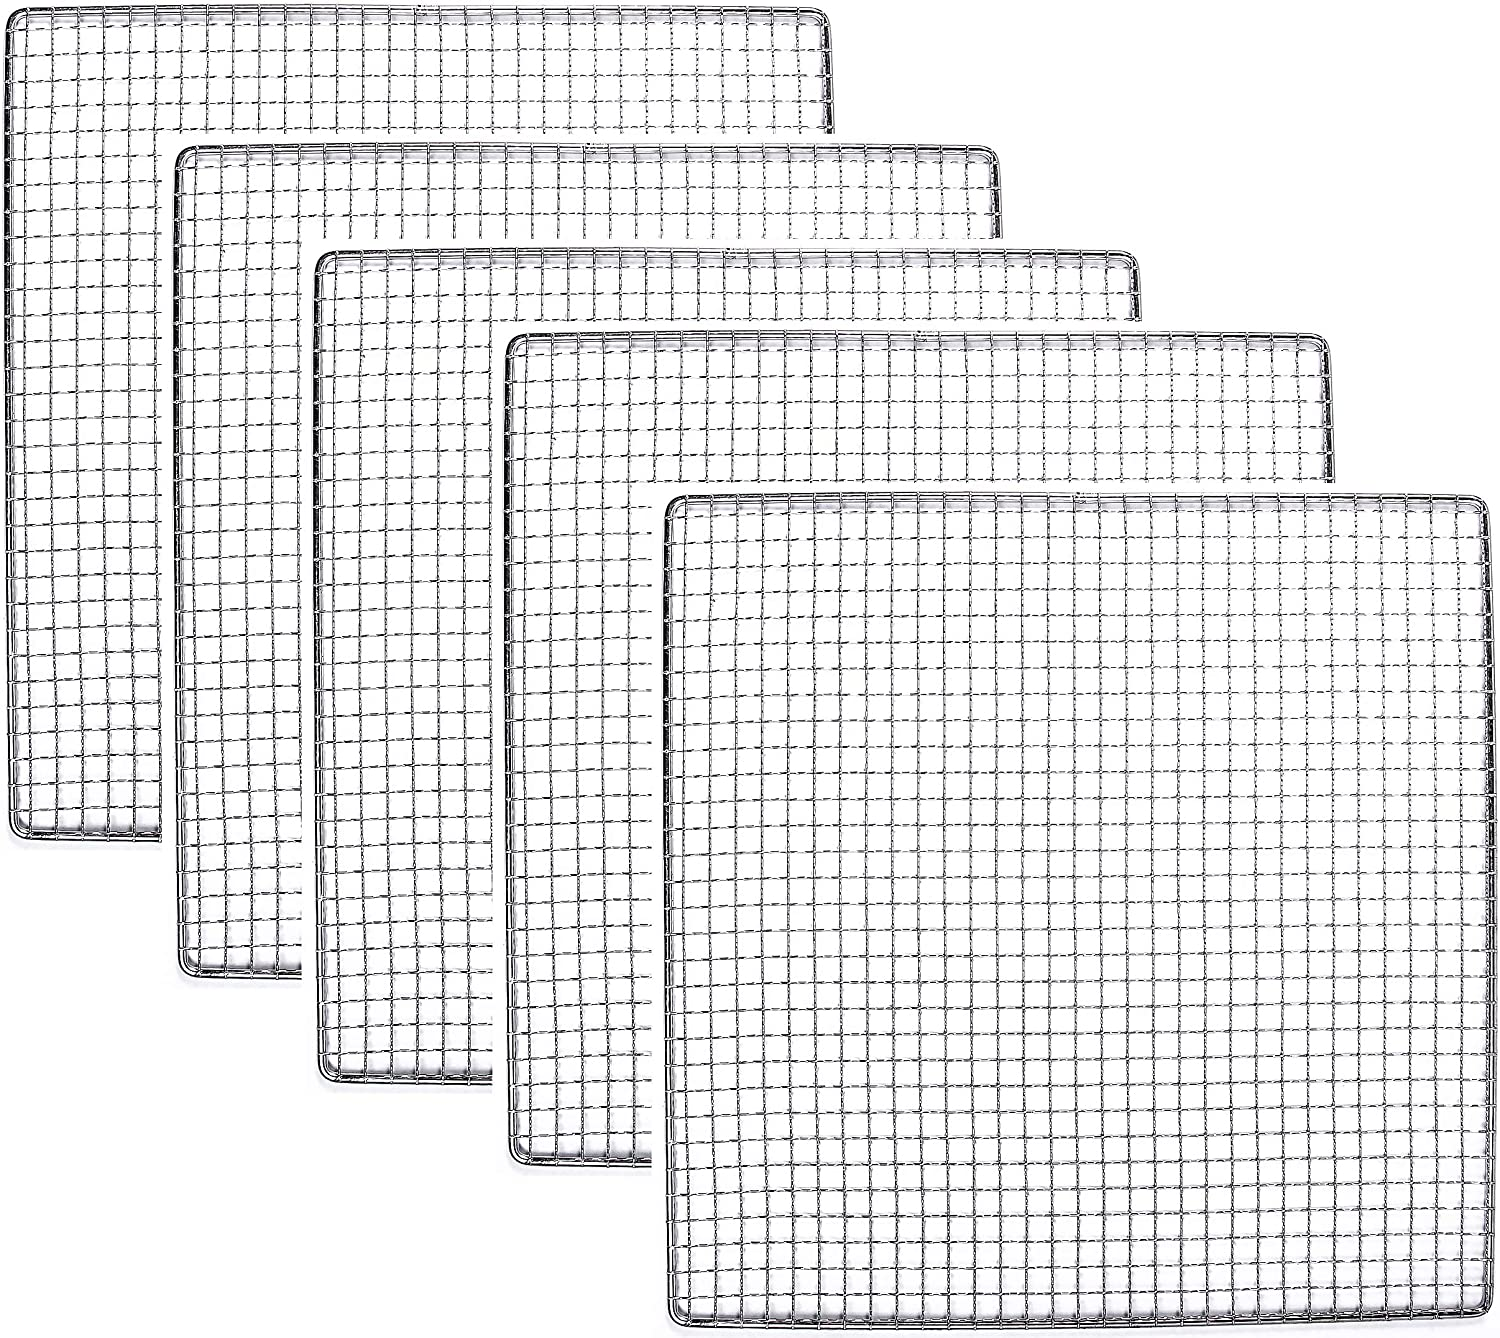 5 Stainless Steel Trays Compatible With Excalibur Dehydrator Replacement UPGRADE Food Shelf Mesh Screen by Bright Kitchen (5 Trays)